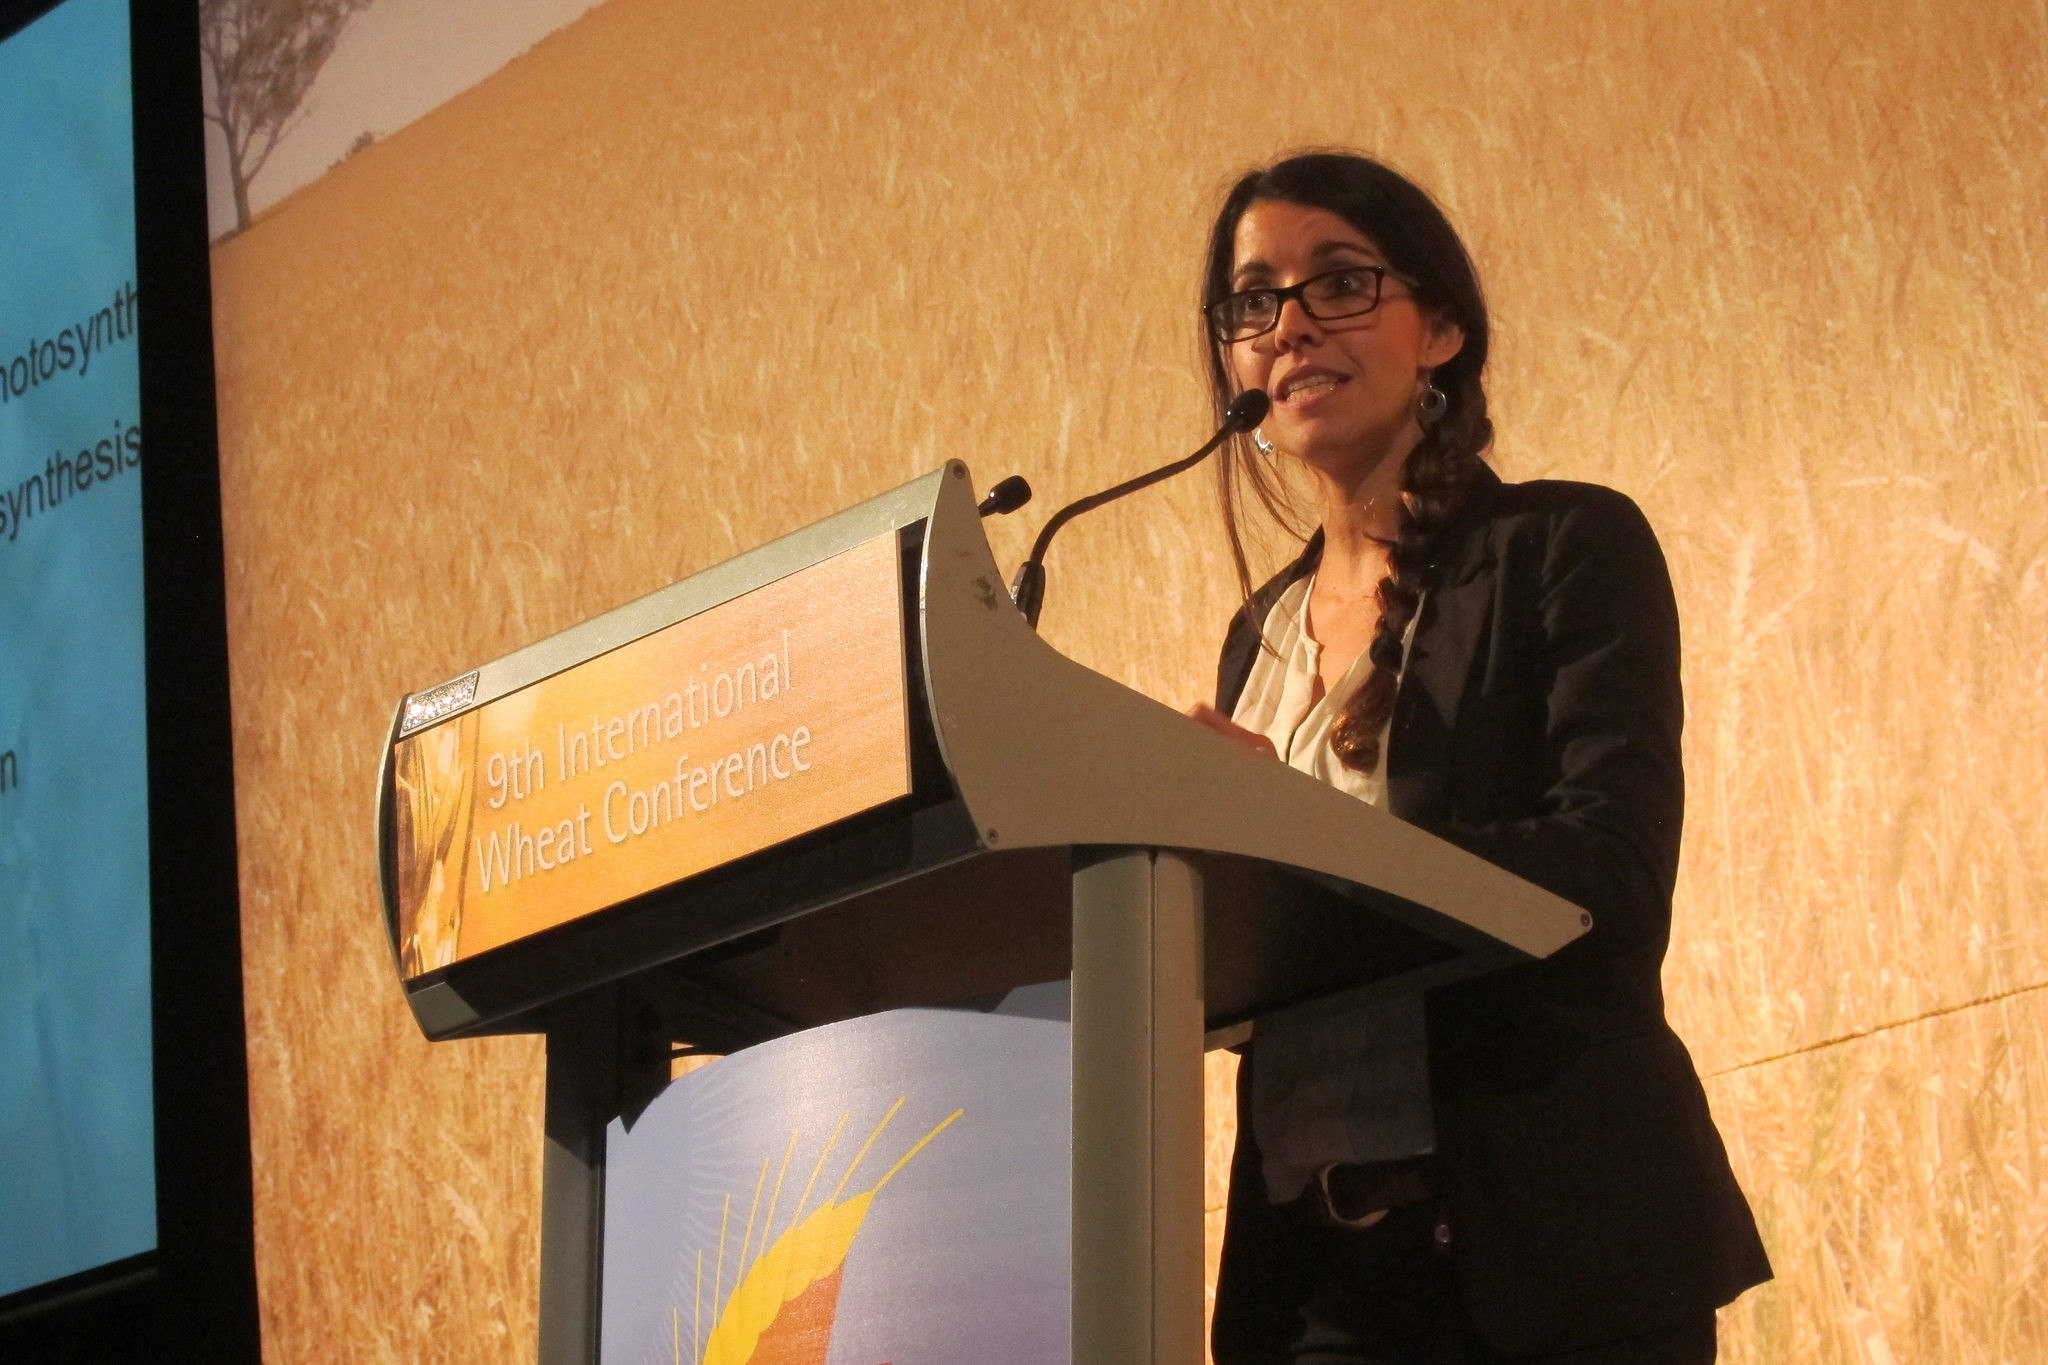 CIMMYT scientist Gemma Molero speaks at the 9th International Wheat Congress in Sydney, Australia, in 2015. (Photo: Julie Mollins/CIMMYT)